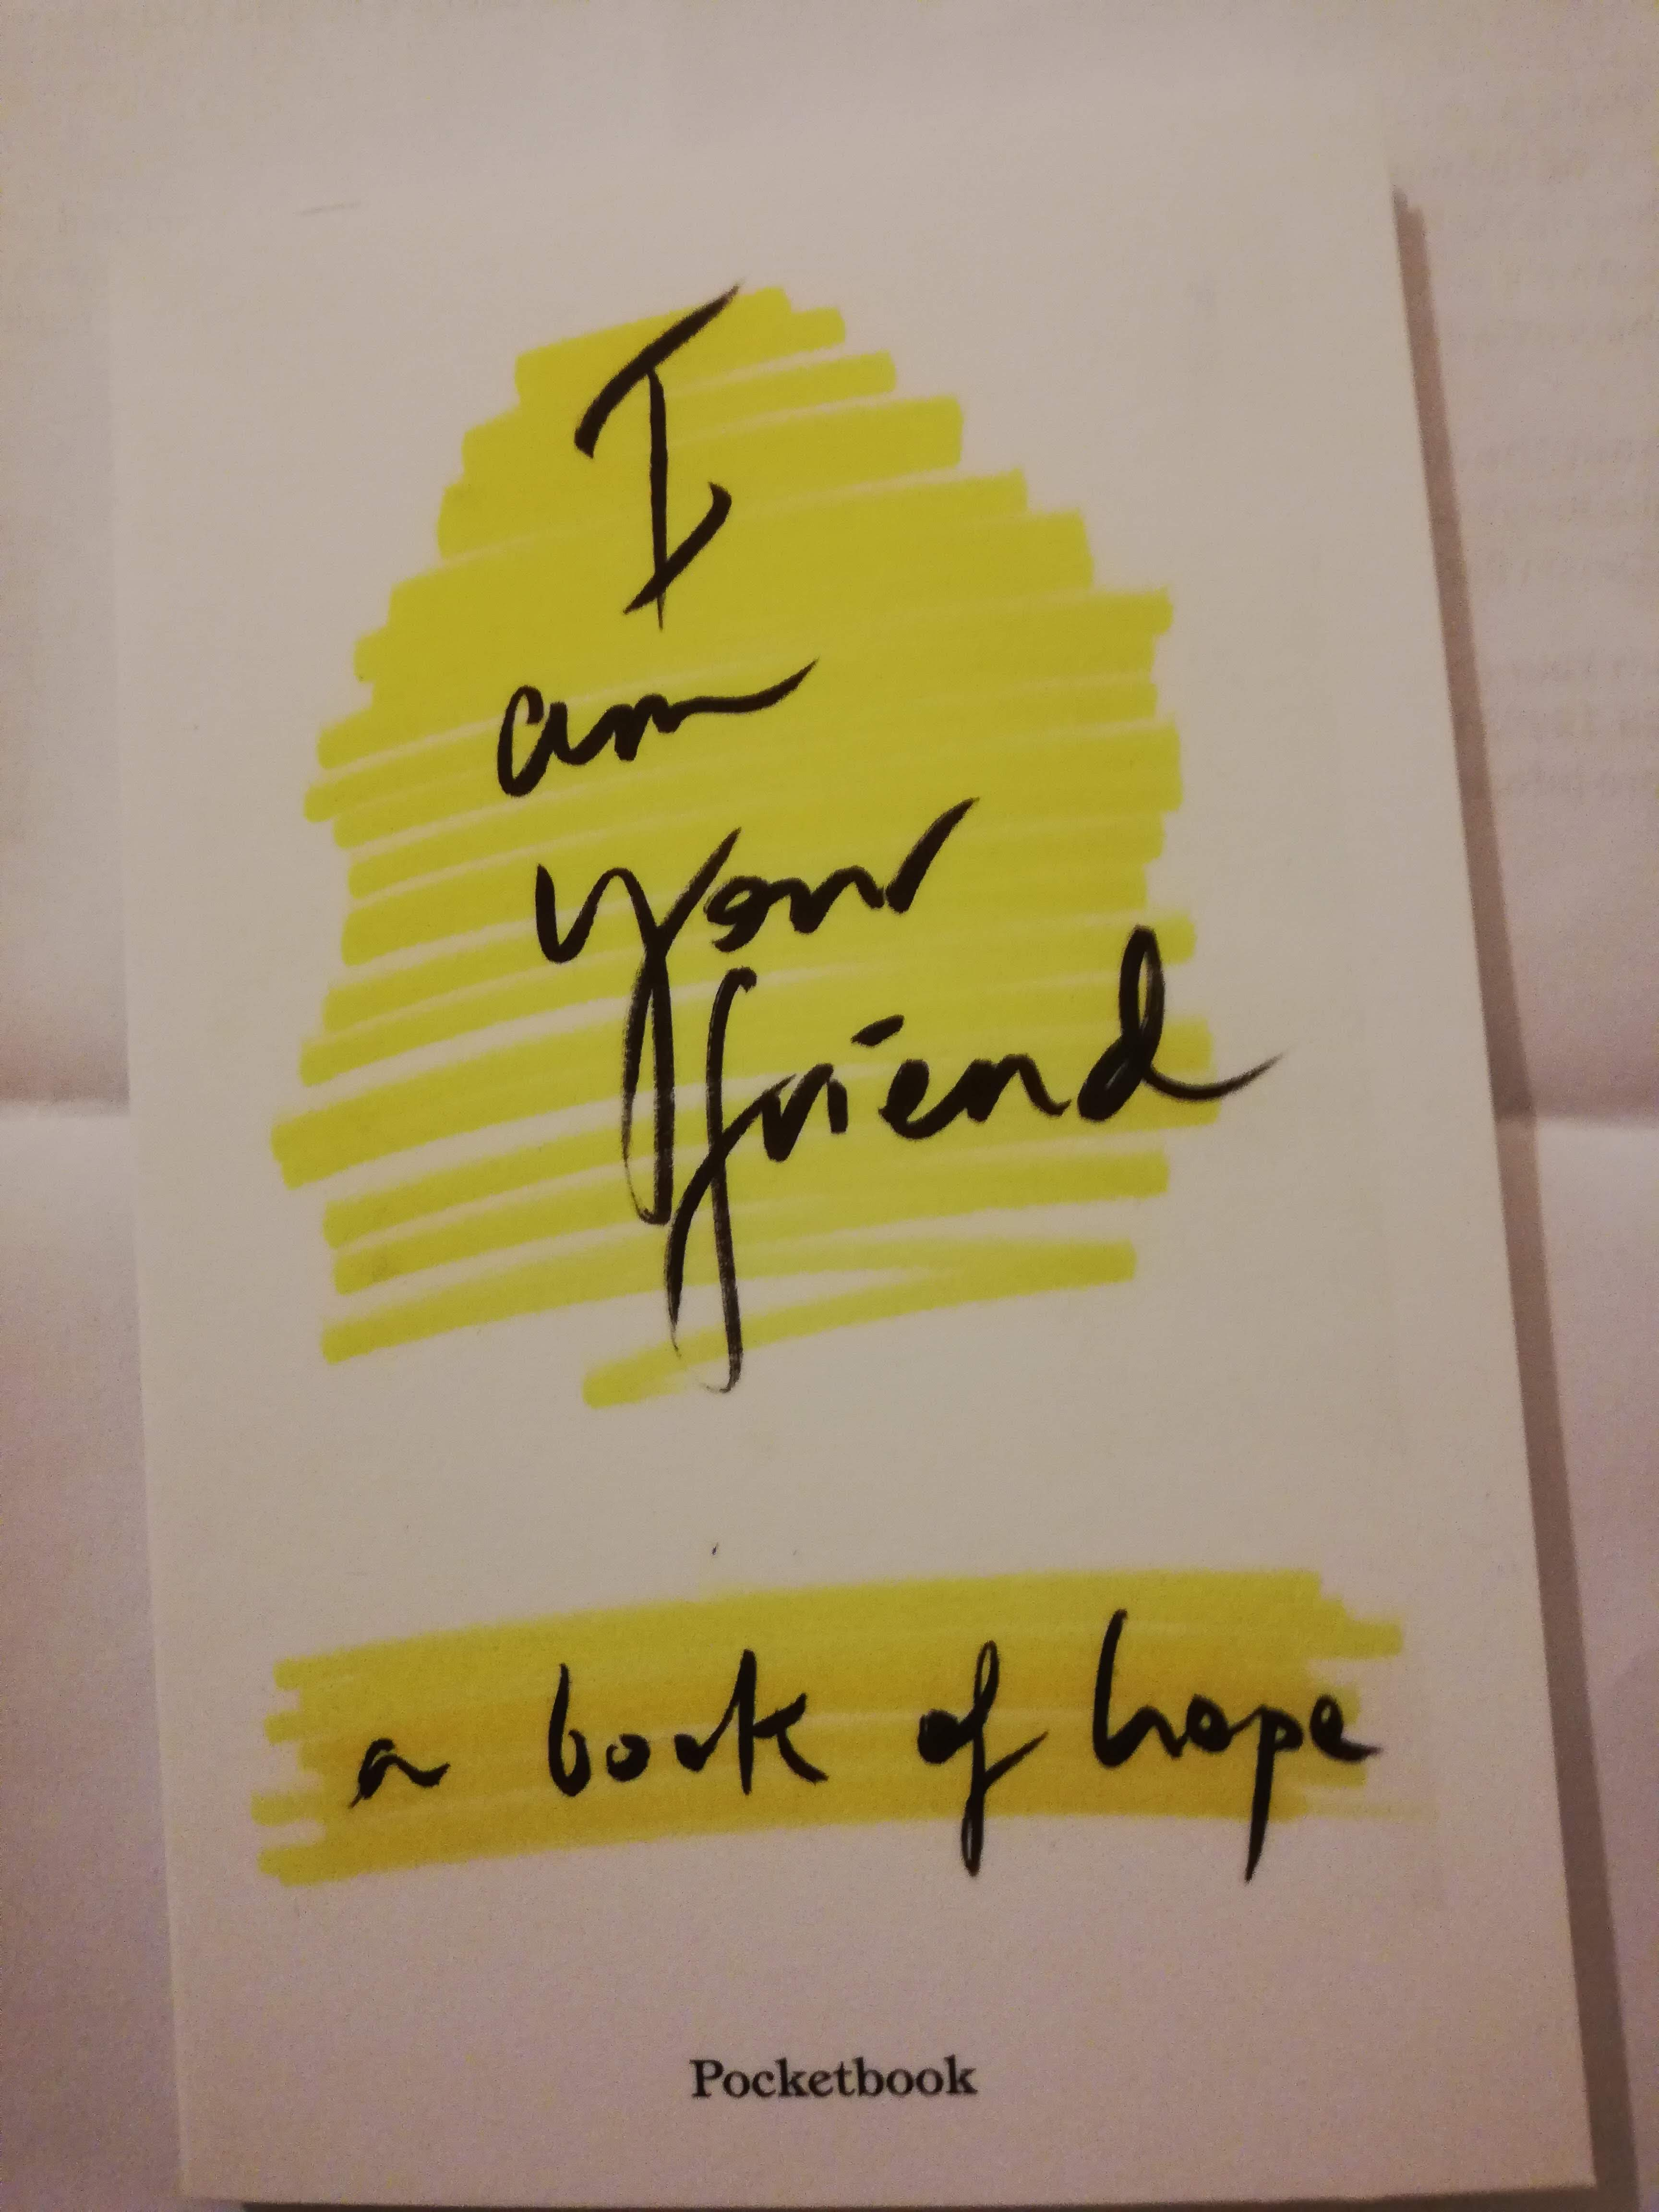 I am your friend. A book of Hope - Book Review